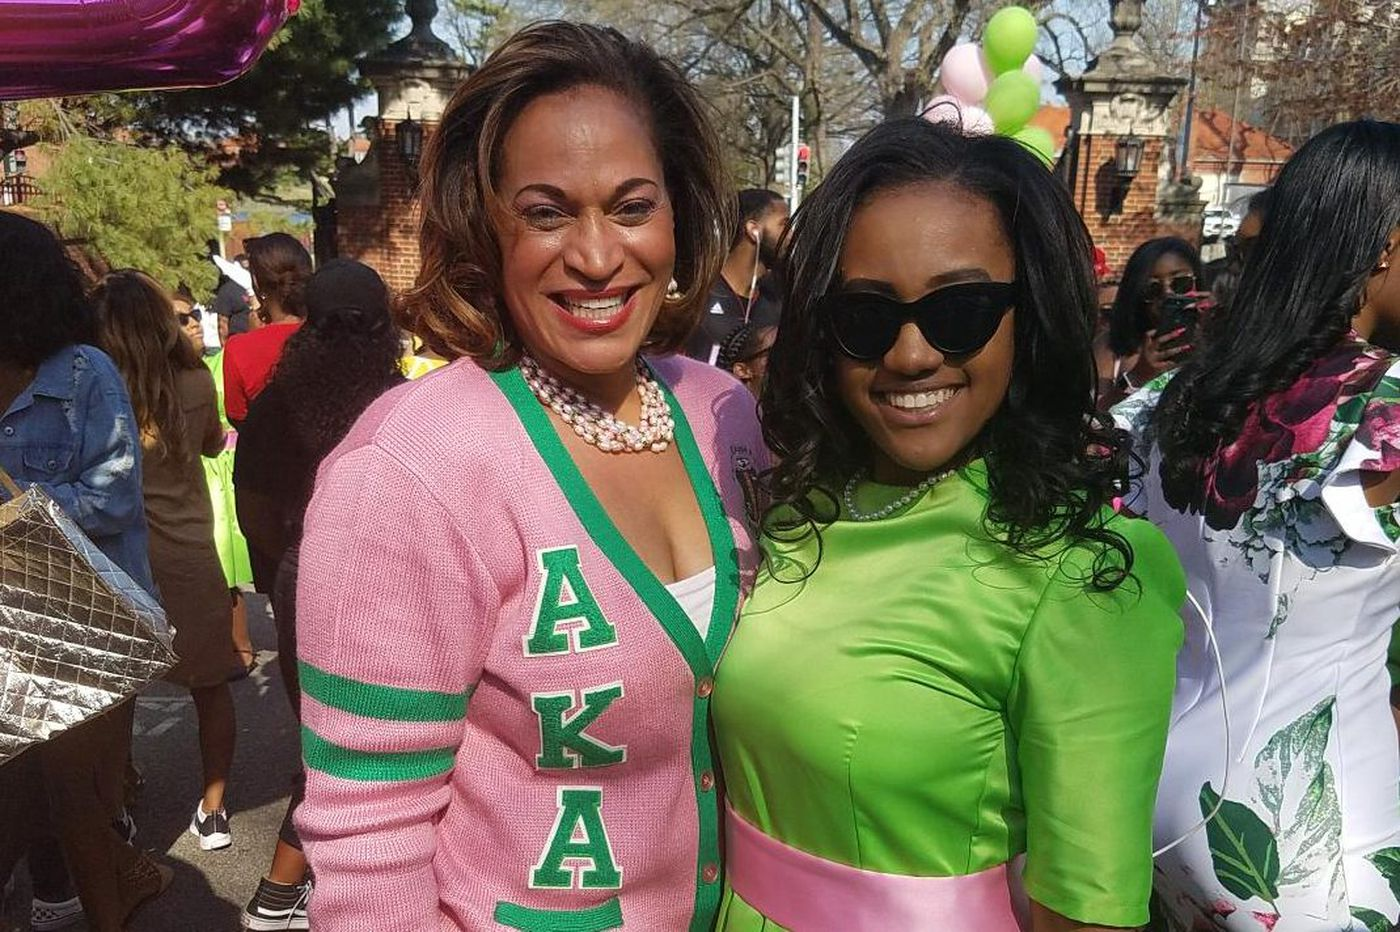 As an Alpha Kappa Alpha, my Greek life has been about help, not harm | Perspective